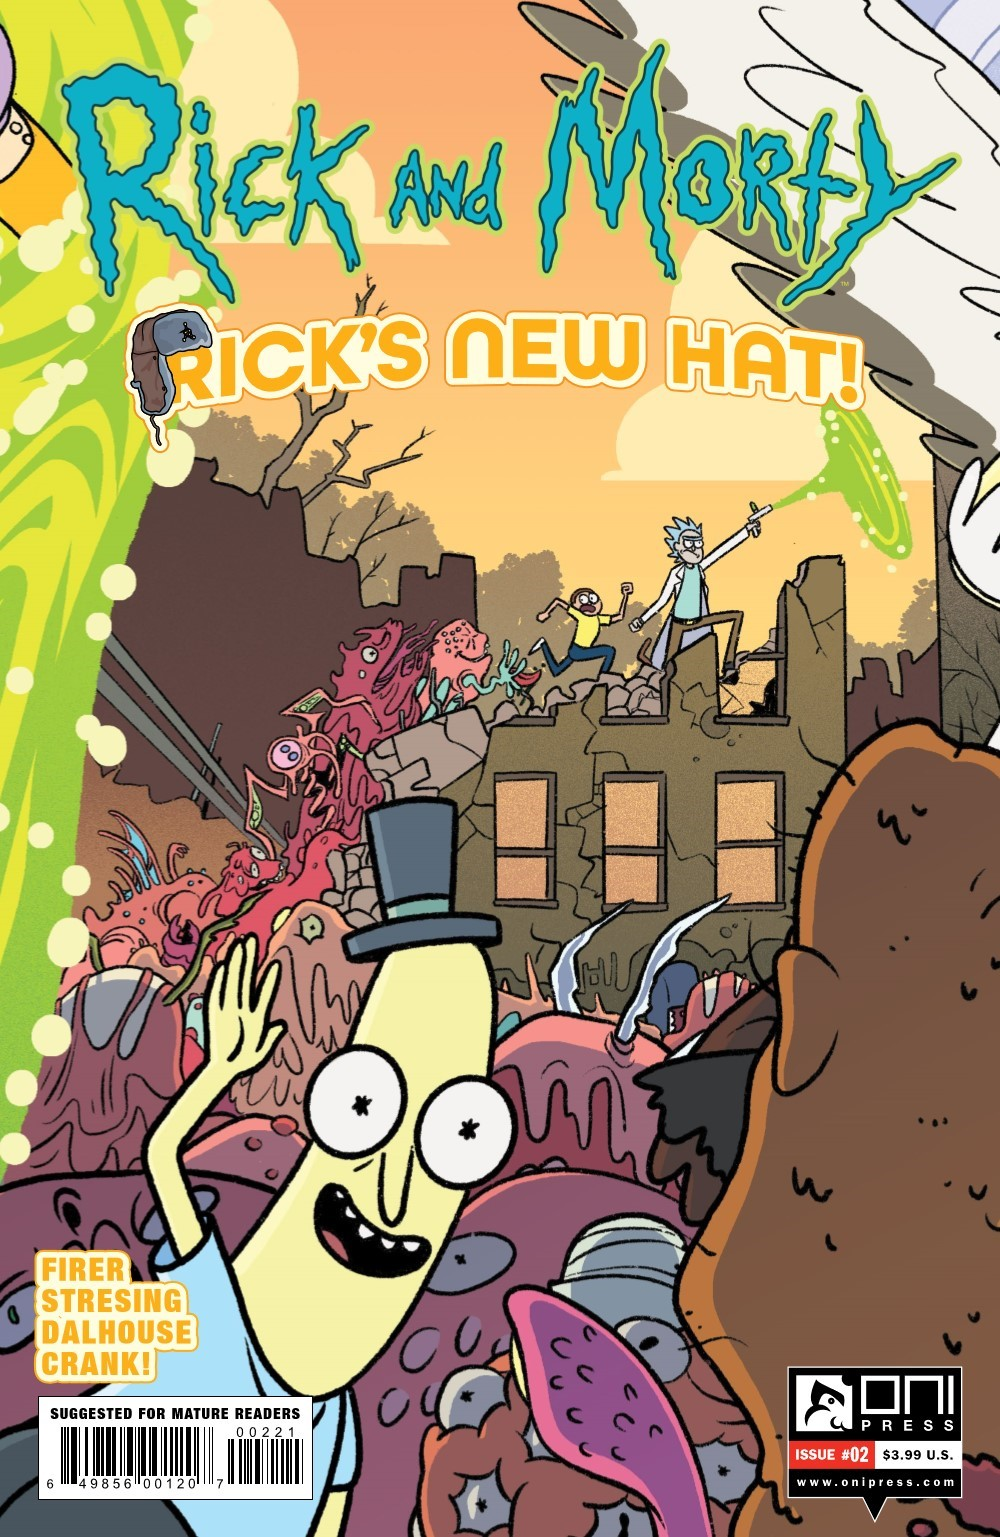 RM-RNH-2-REFERENCE-02 ComicList Previews: RICK AND MORTY RICK'S NEW HAT #2